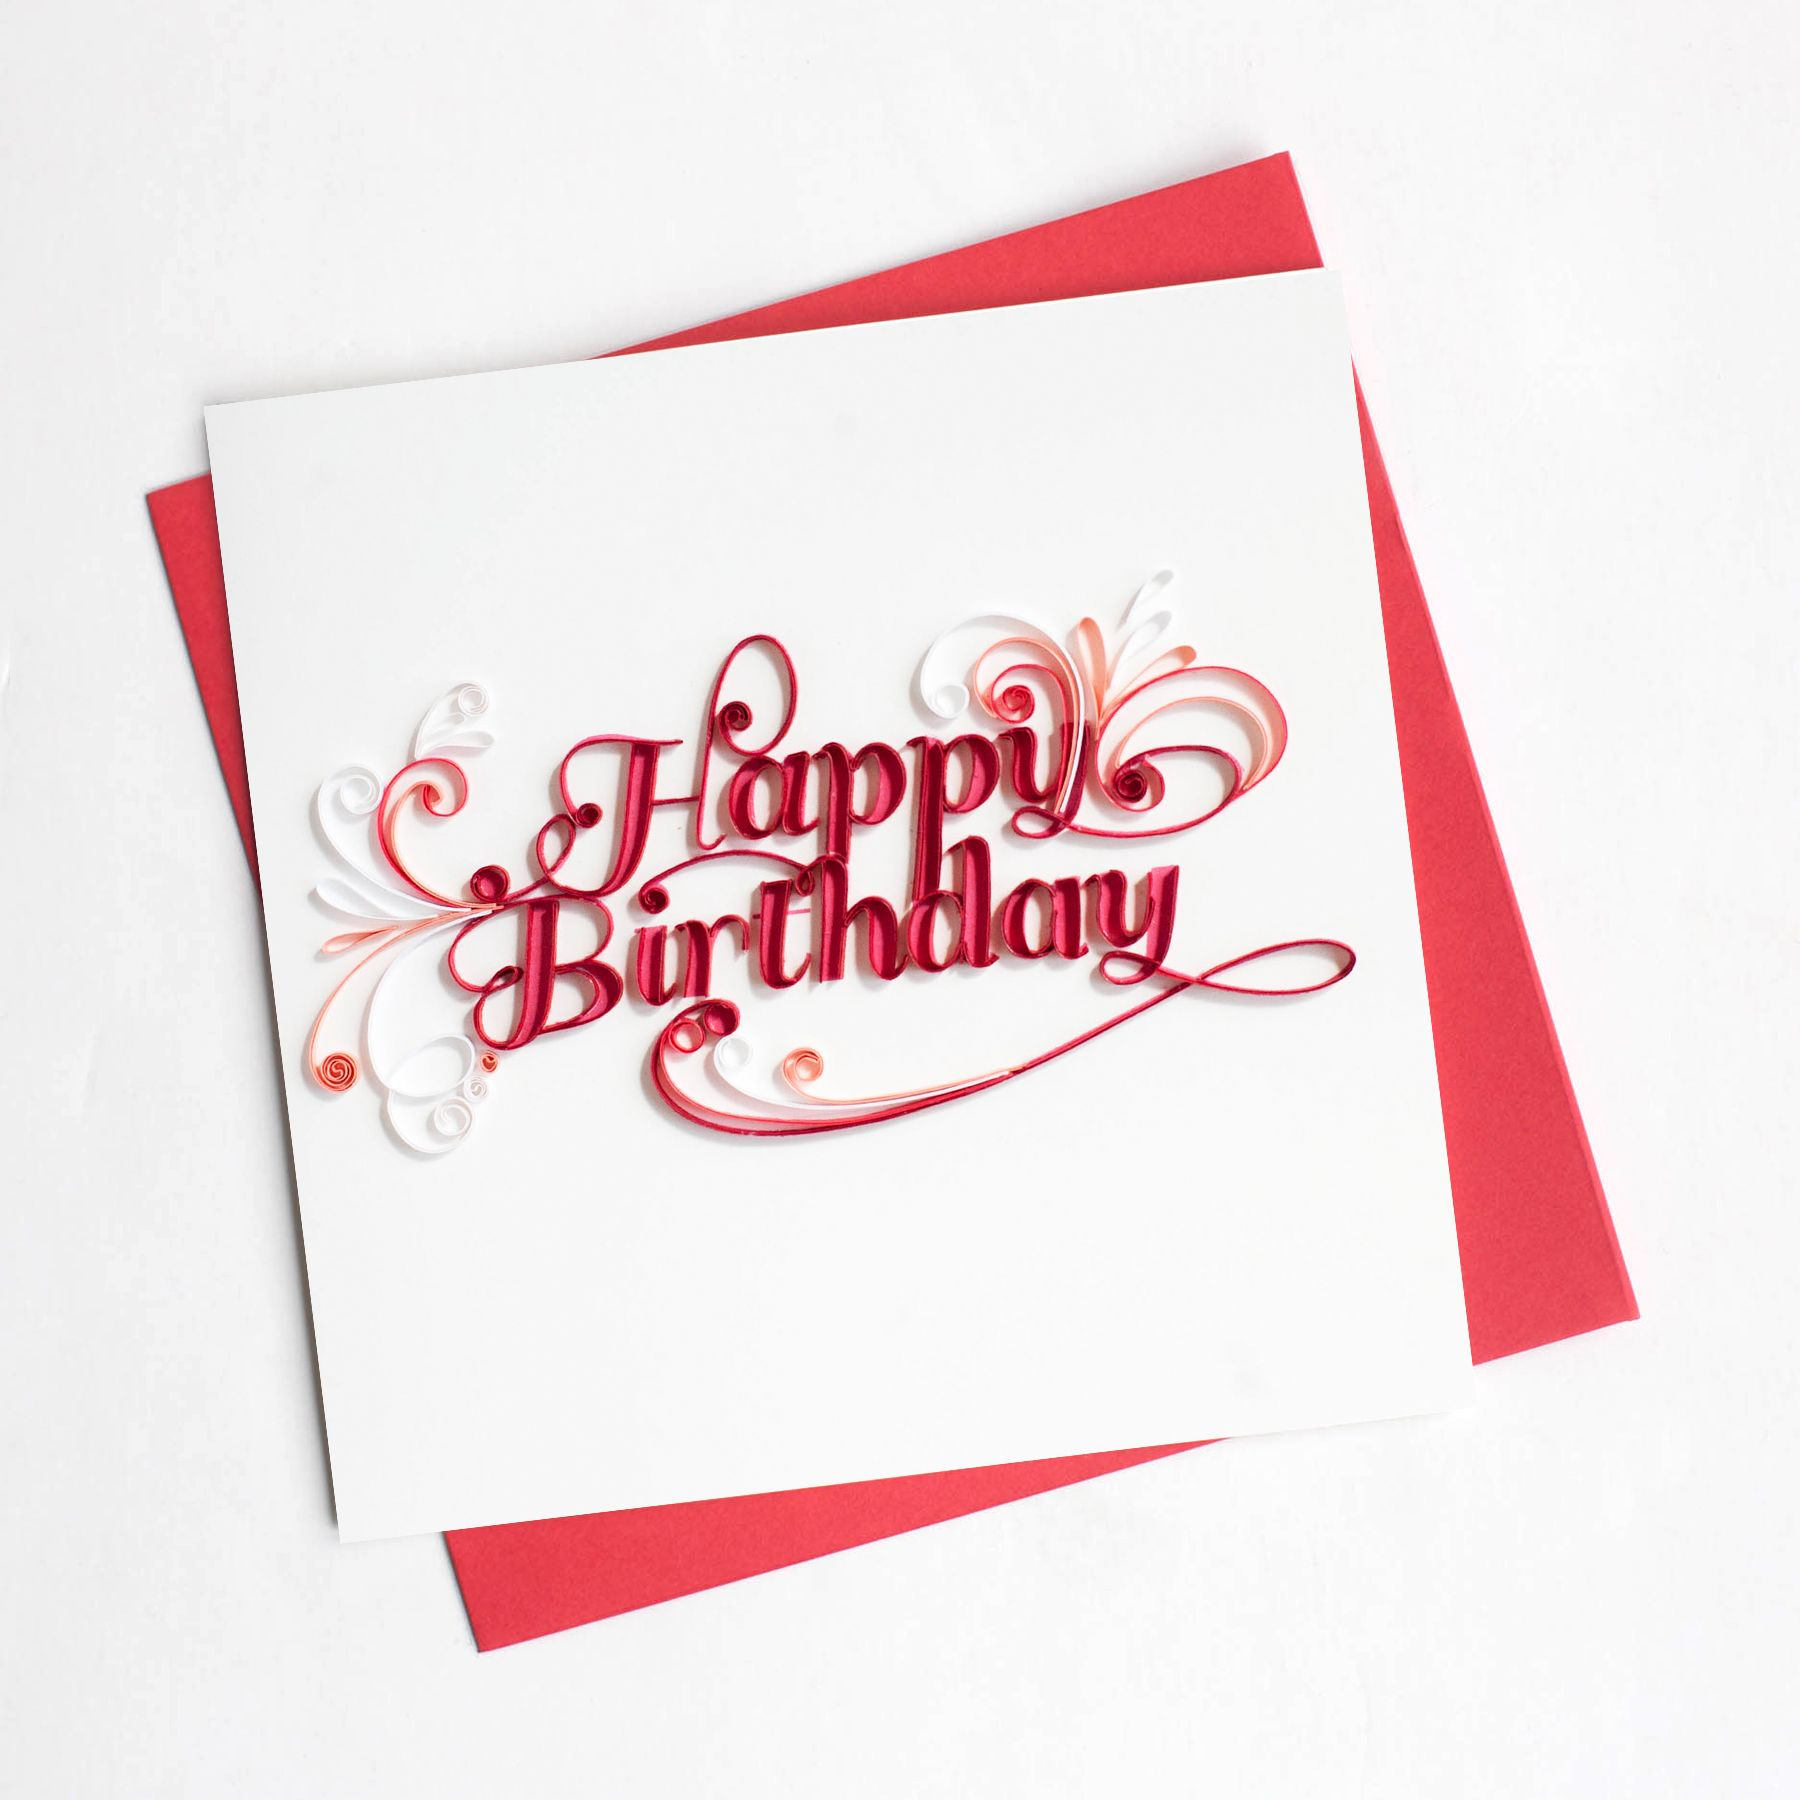 birthday card extra postage required ; c6a6e6ff10bf44d0cad60cc1f1b9c826